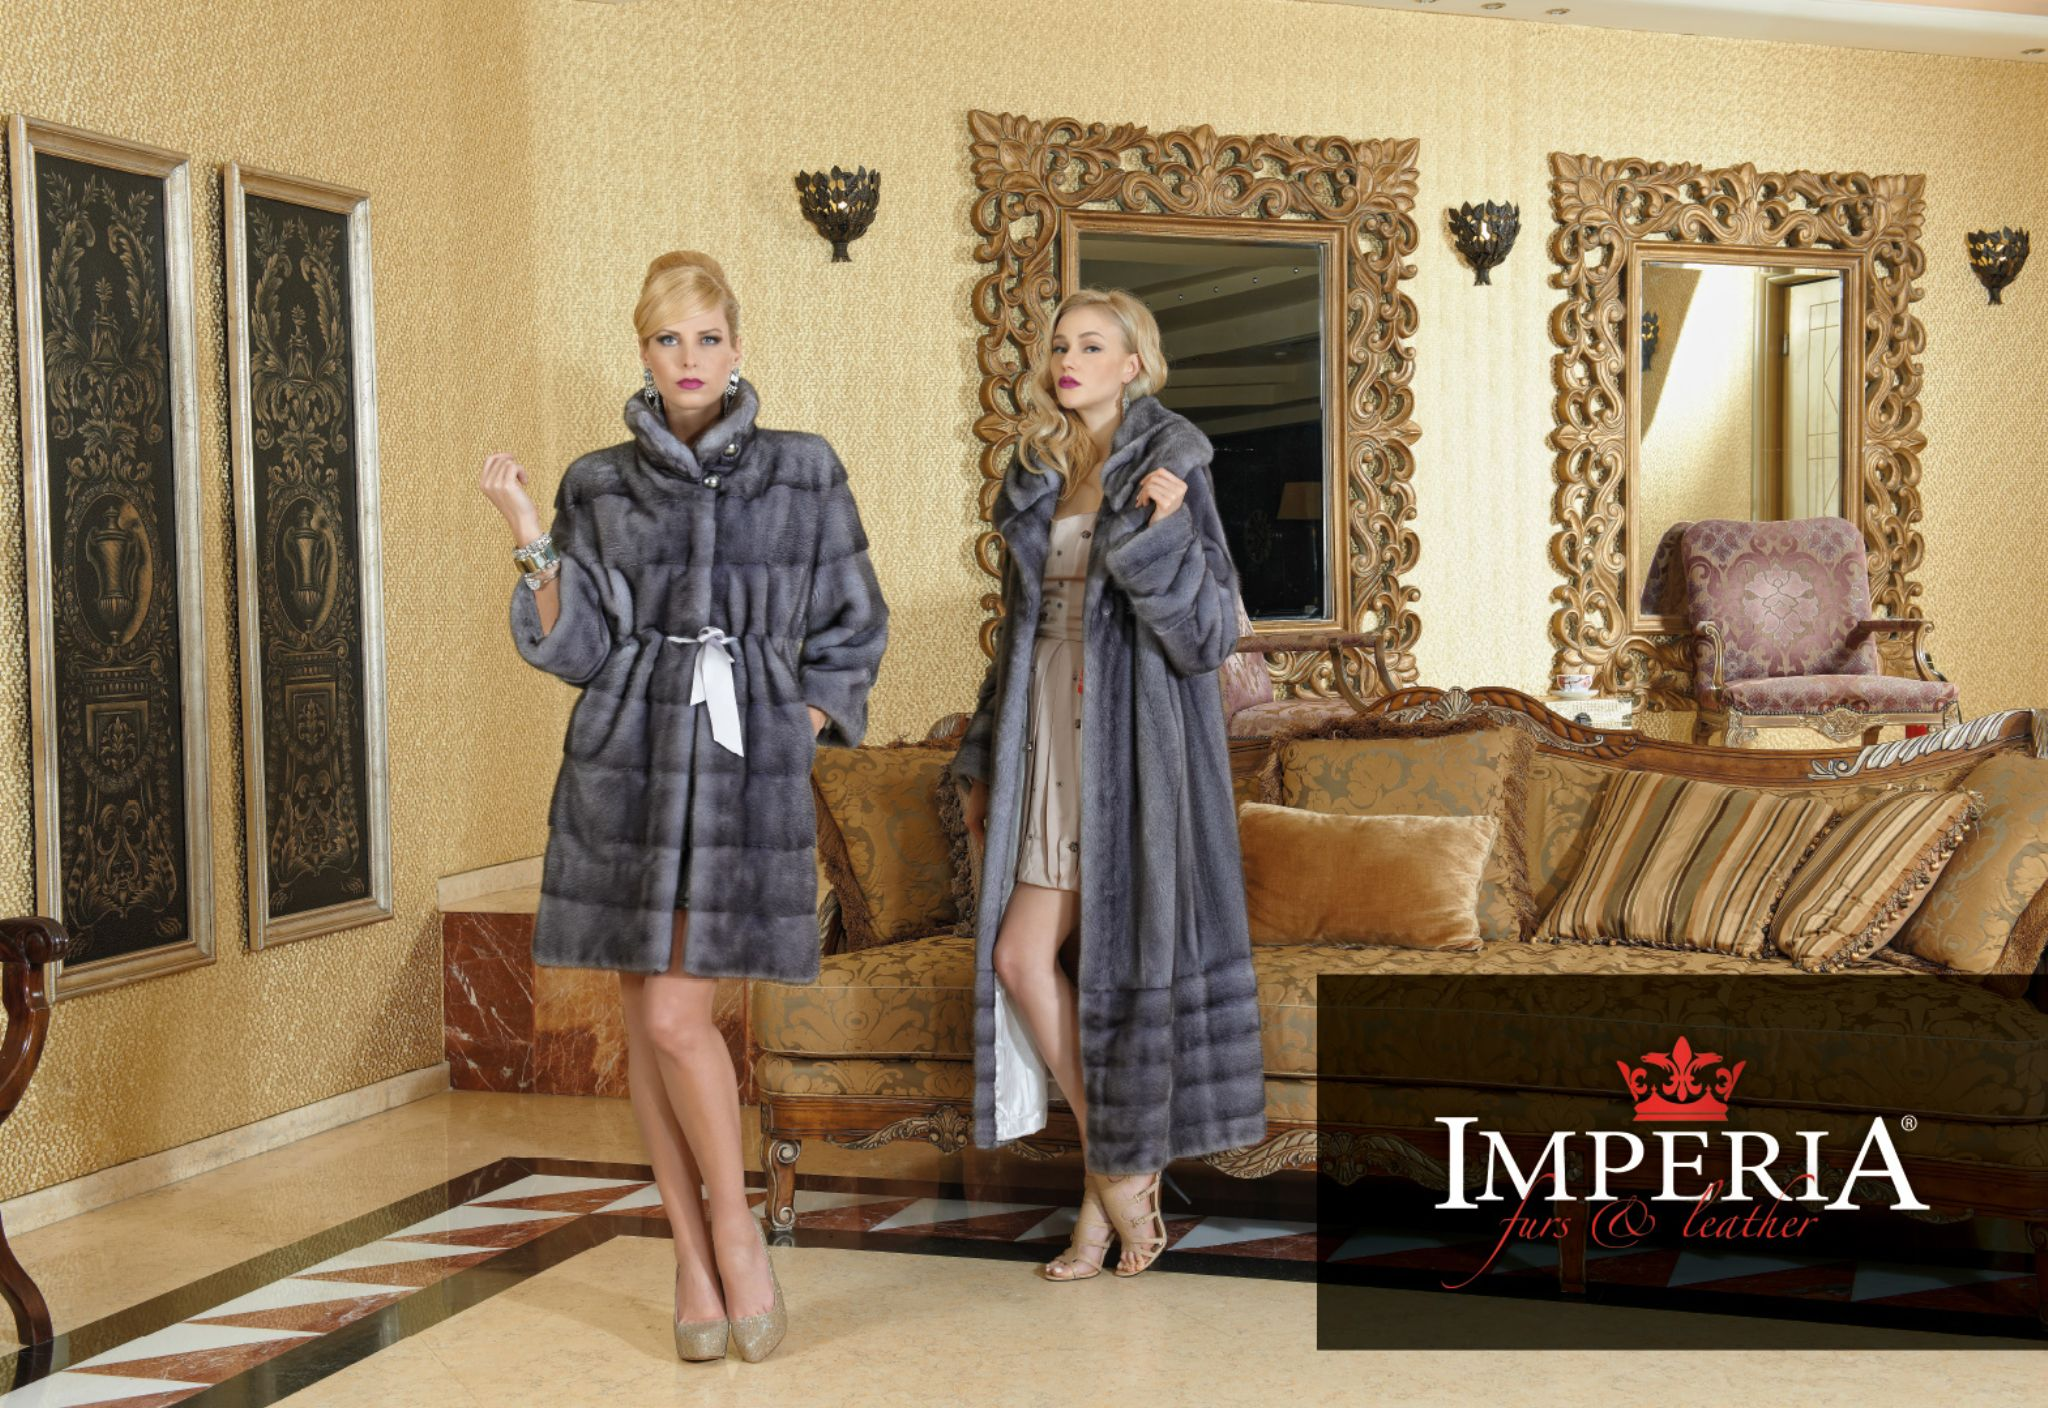 Our version of Fifty Shades of Grey Trilogy by Imperia Furs